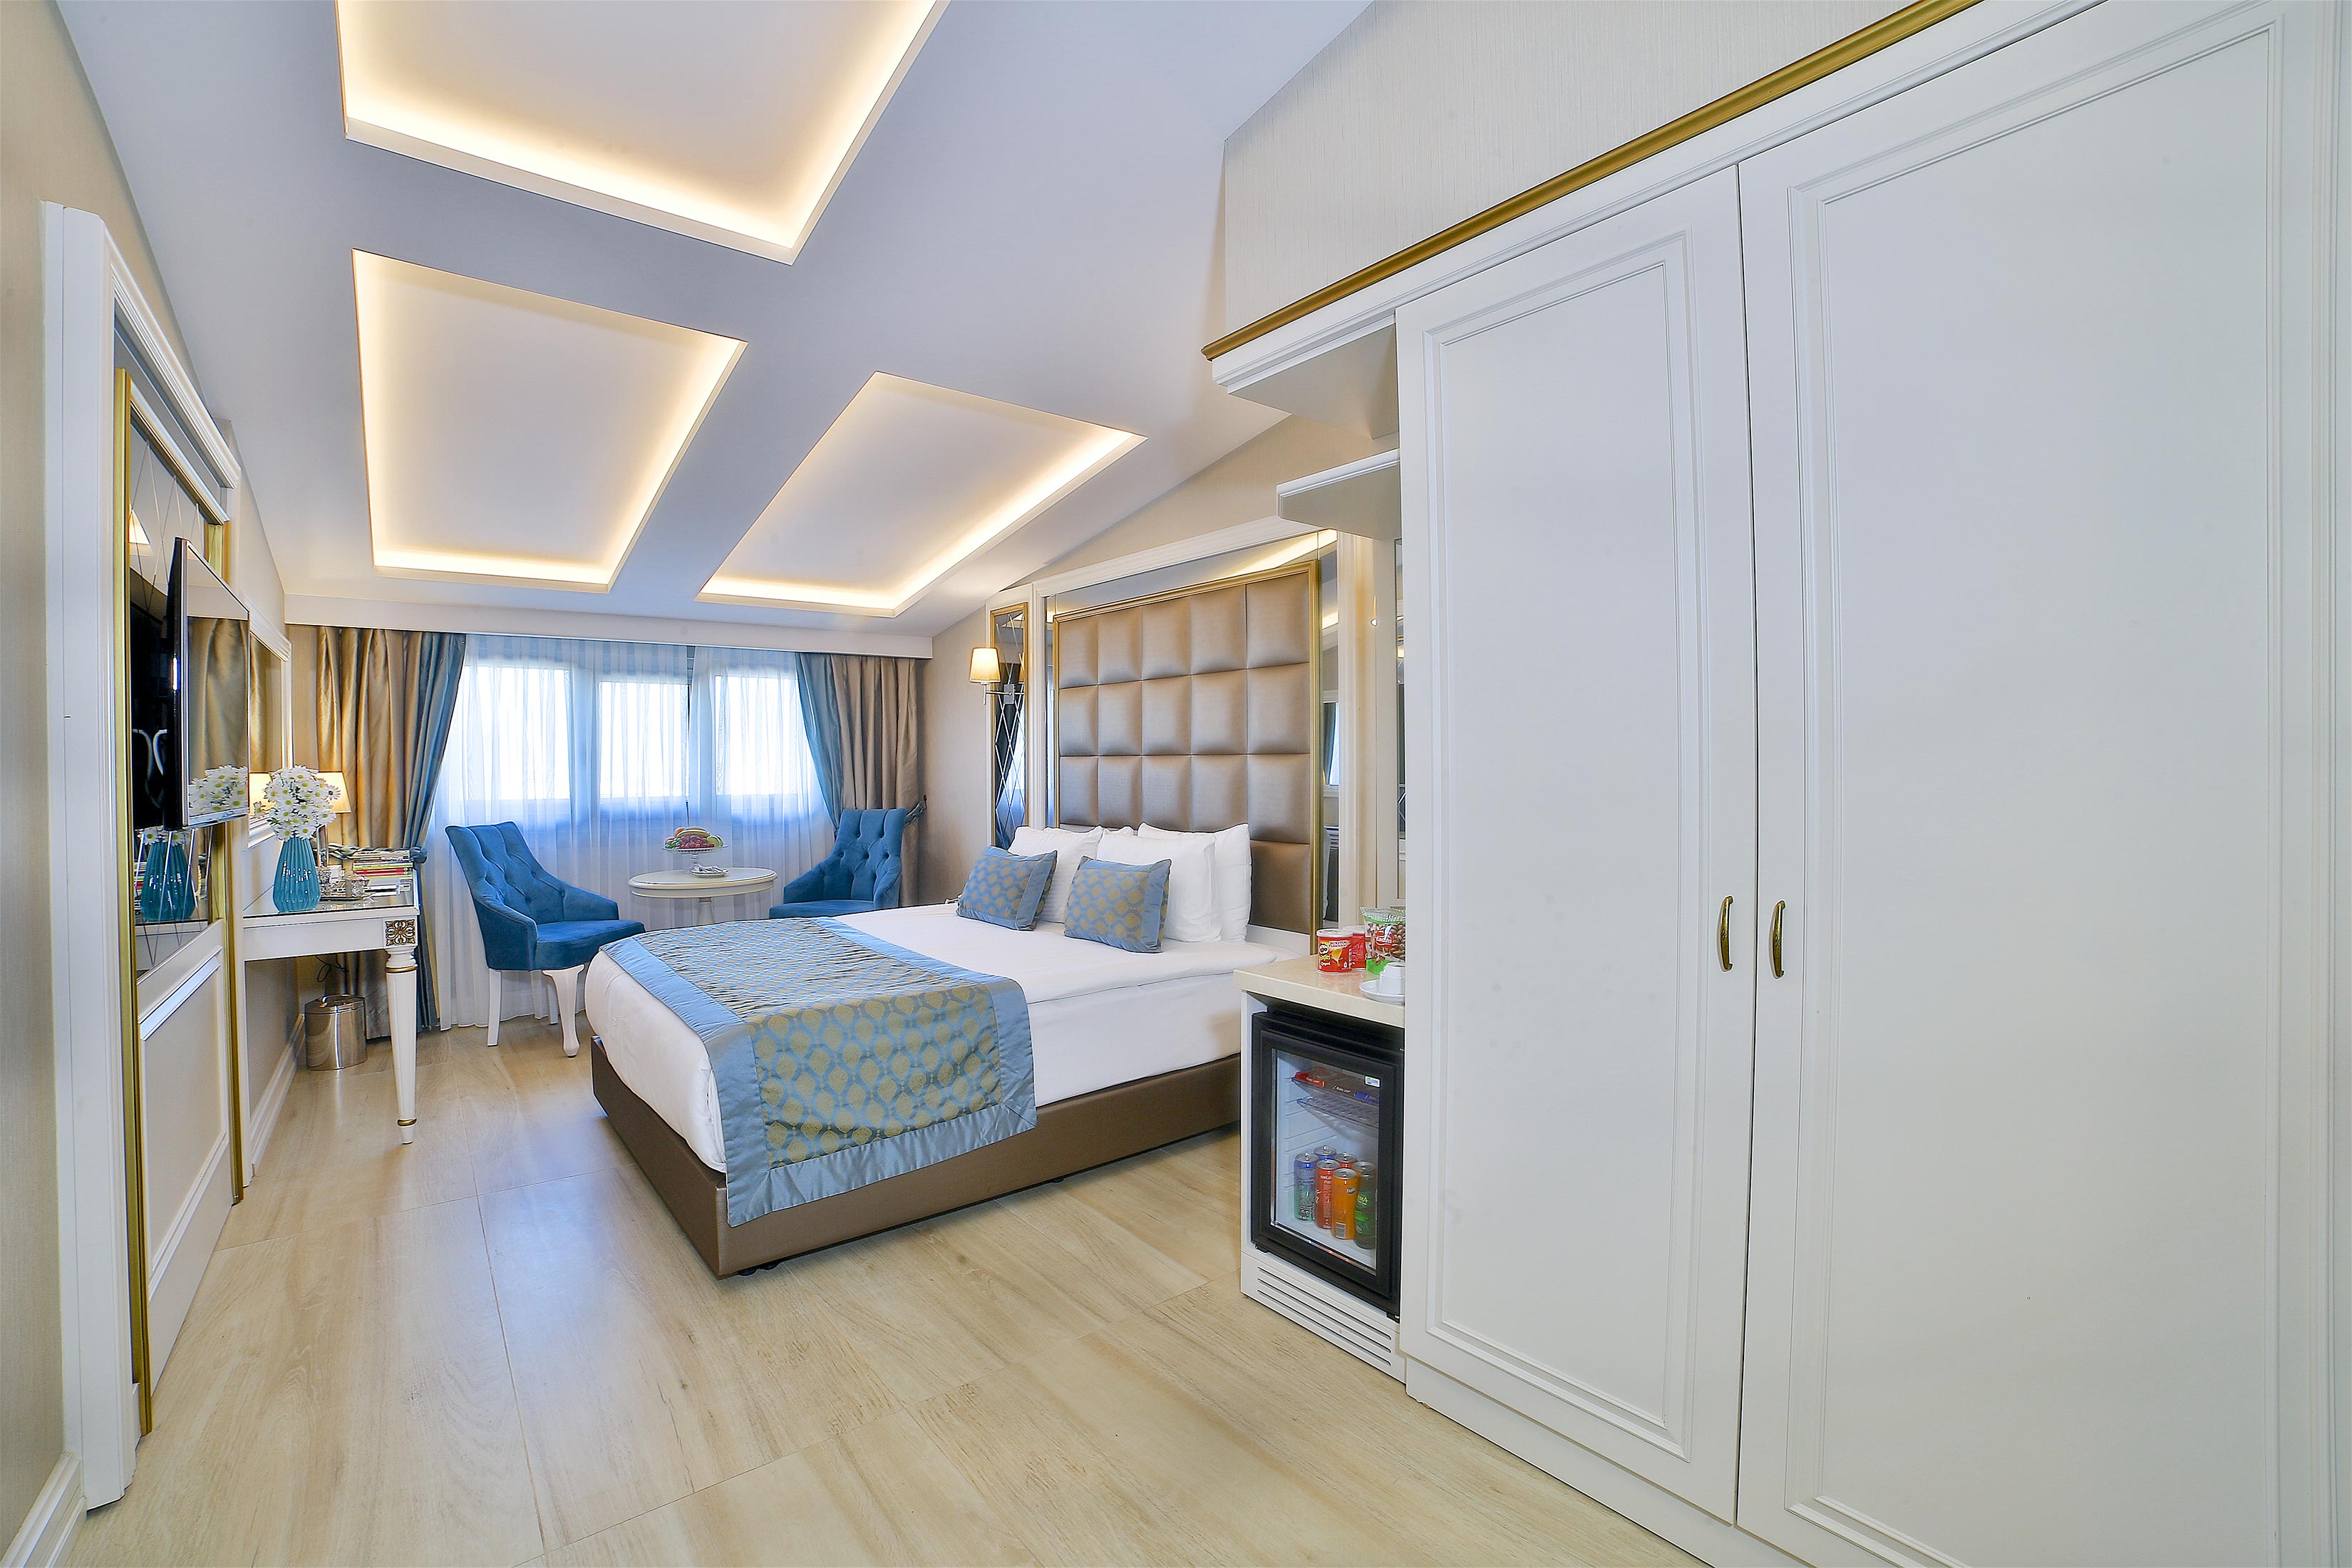 Buke Hotel - King Room with City View